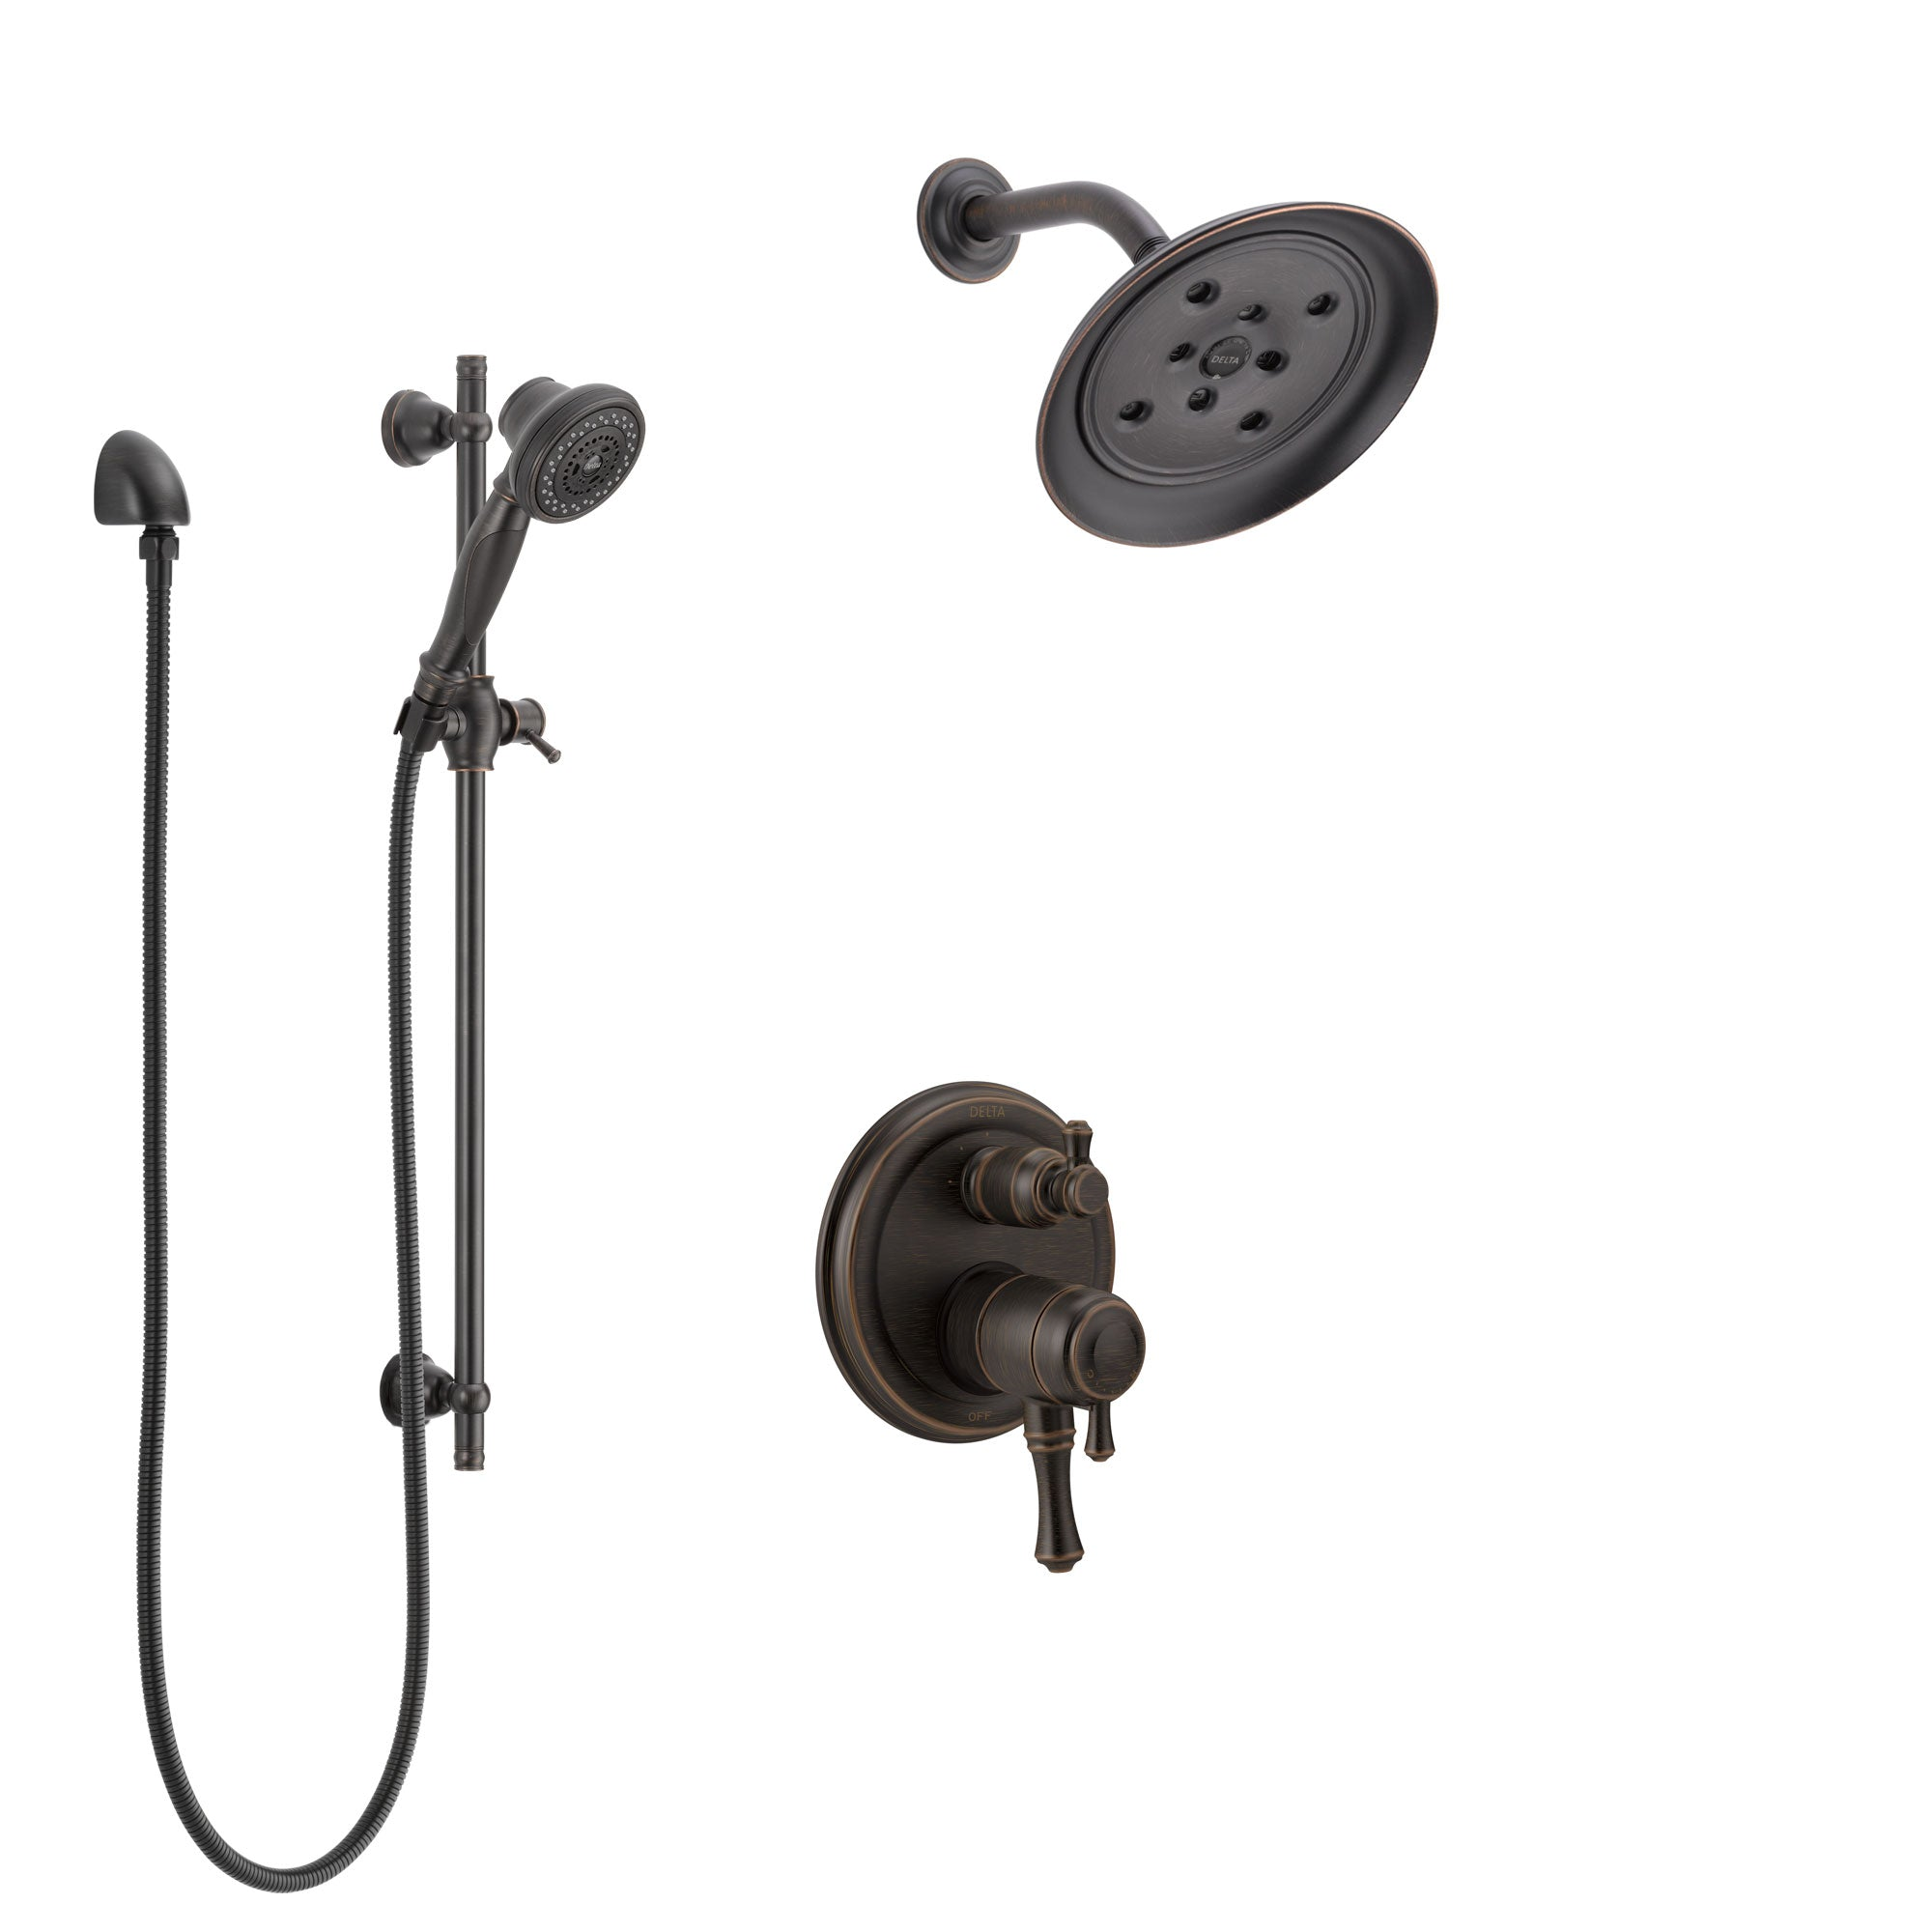 Delta Cassidy Venetian Bronze Shower System with Dual Control Handle, Integrated Diverter, Showerhead, and Hand Shower with Slidebar SS27897RB1